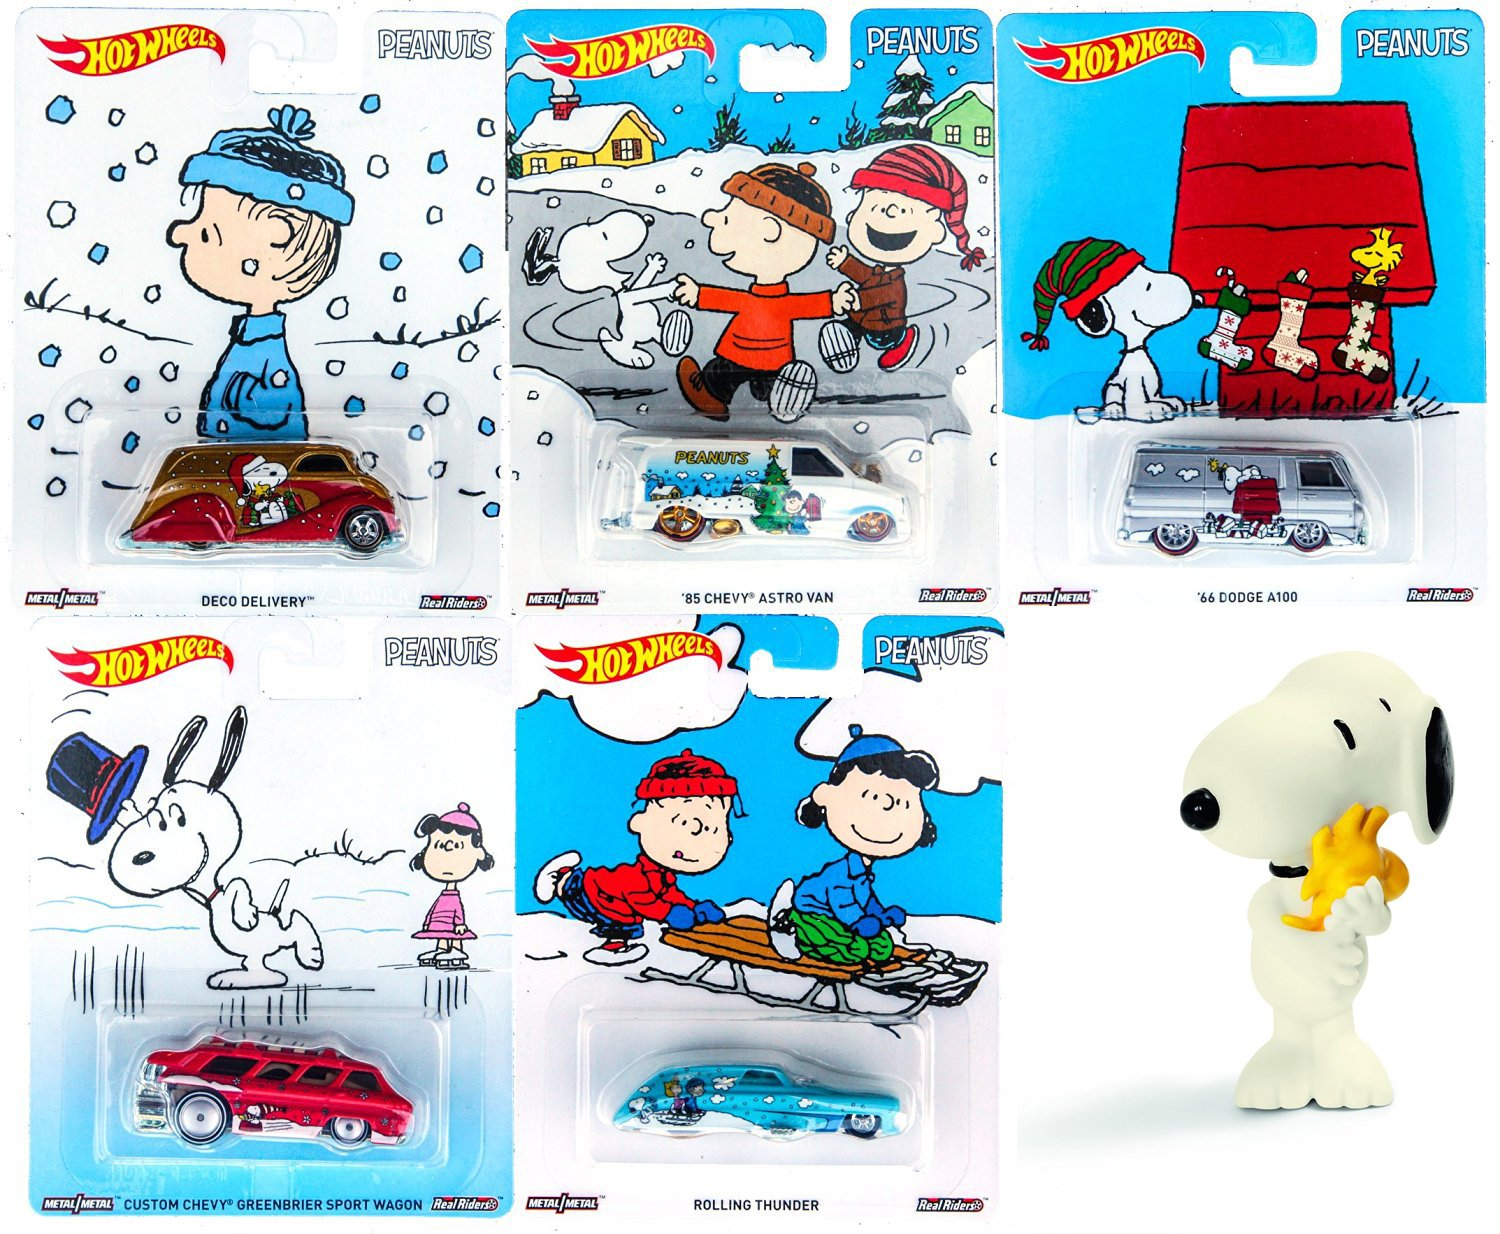 Amazon.com: Peanuts Hot Wheels Snoopy Charlie Brown Christmas Set ...